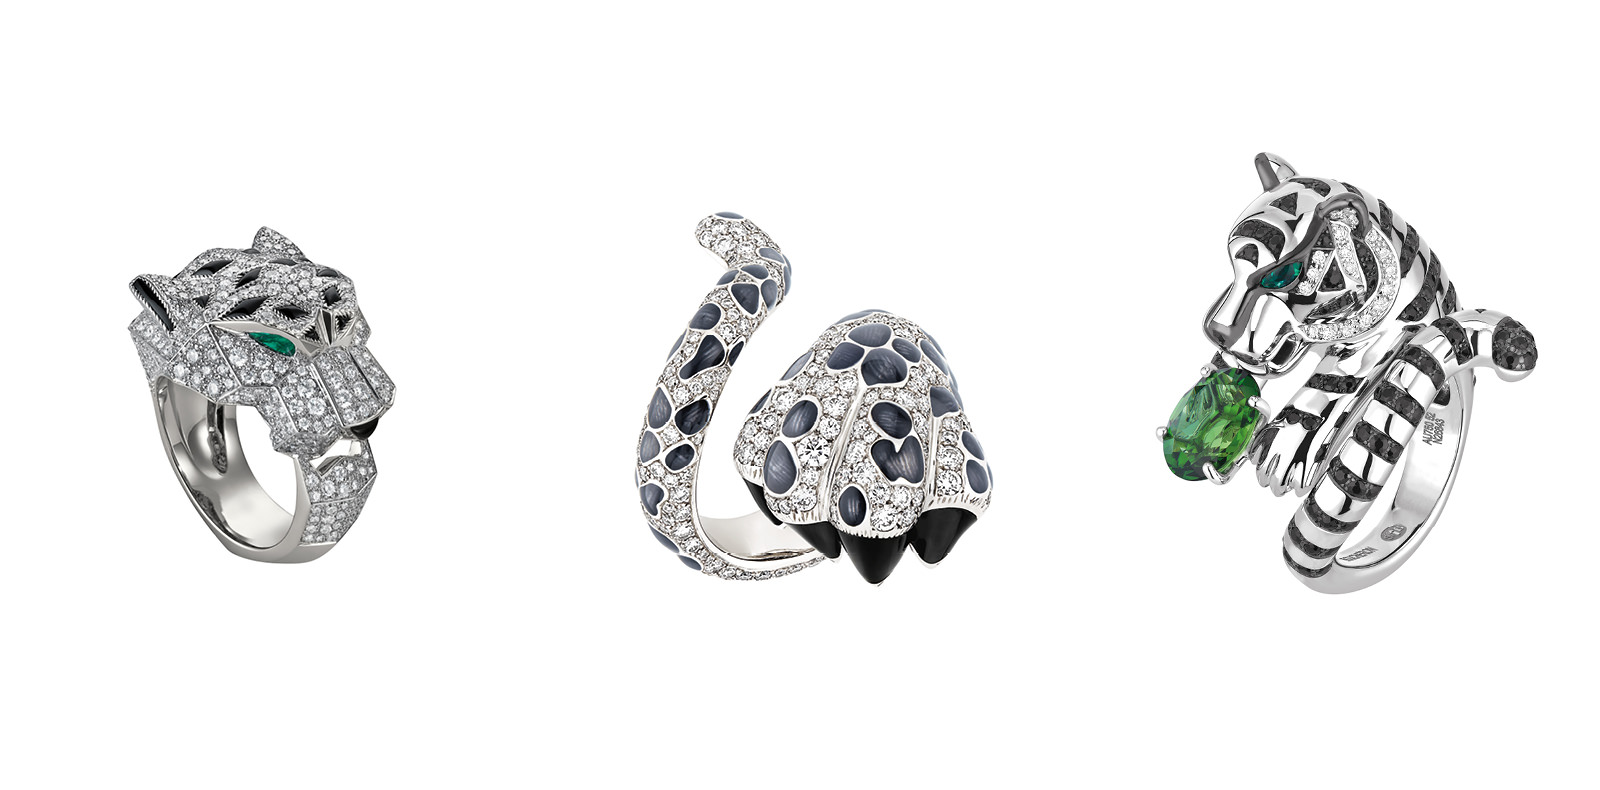 """Panther"", grey gold, diamonds, emeralds and onyx, CARTIER. ""Mitza"", white gold, diamonds and laquered grey and blue, DIOR JEWELRY. ""Bagha, the tiger"", green tourmaline, diamonds, black saphires, emeralds, white gold, BOUCHERON.     Selection by Rebecca Bleynie."